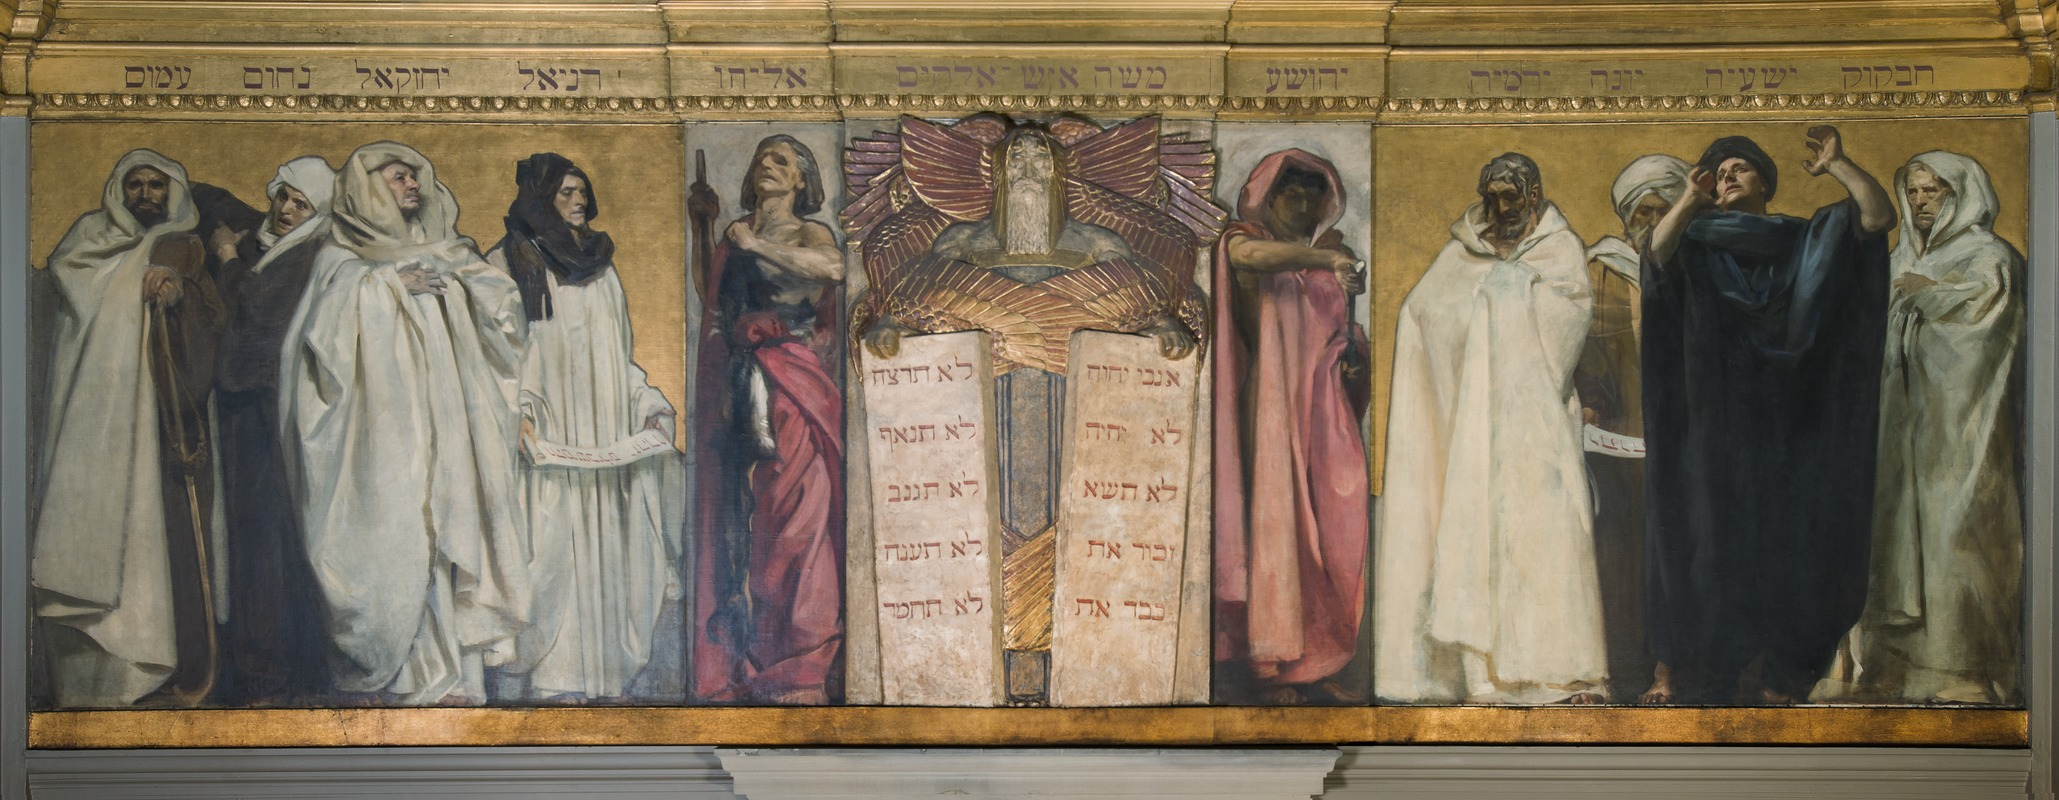 Mural at Boston Public Library - from left to right are Amos, Nahum, Ezekiel, Daniel, Elijah, Moses, Joshua, Jeremiah, Jonah, Isaiah, and Habakkuk. At center, the image of Moses is rendered in high plaster relief, bearing two tablets inscribed with the Ten Commandments. ( source )